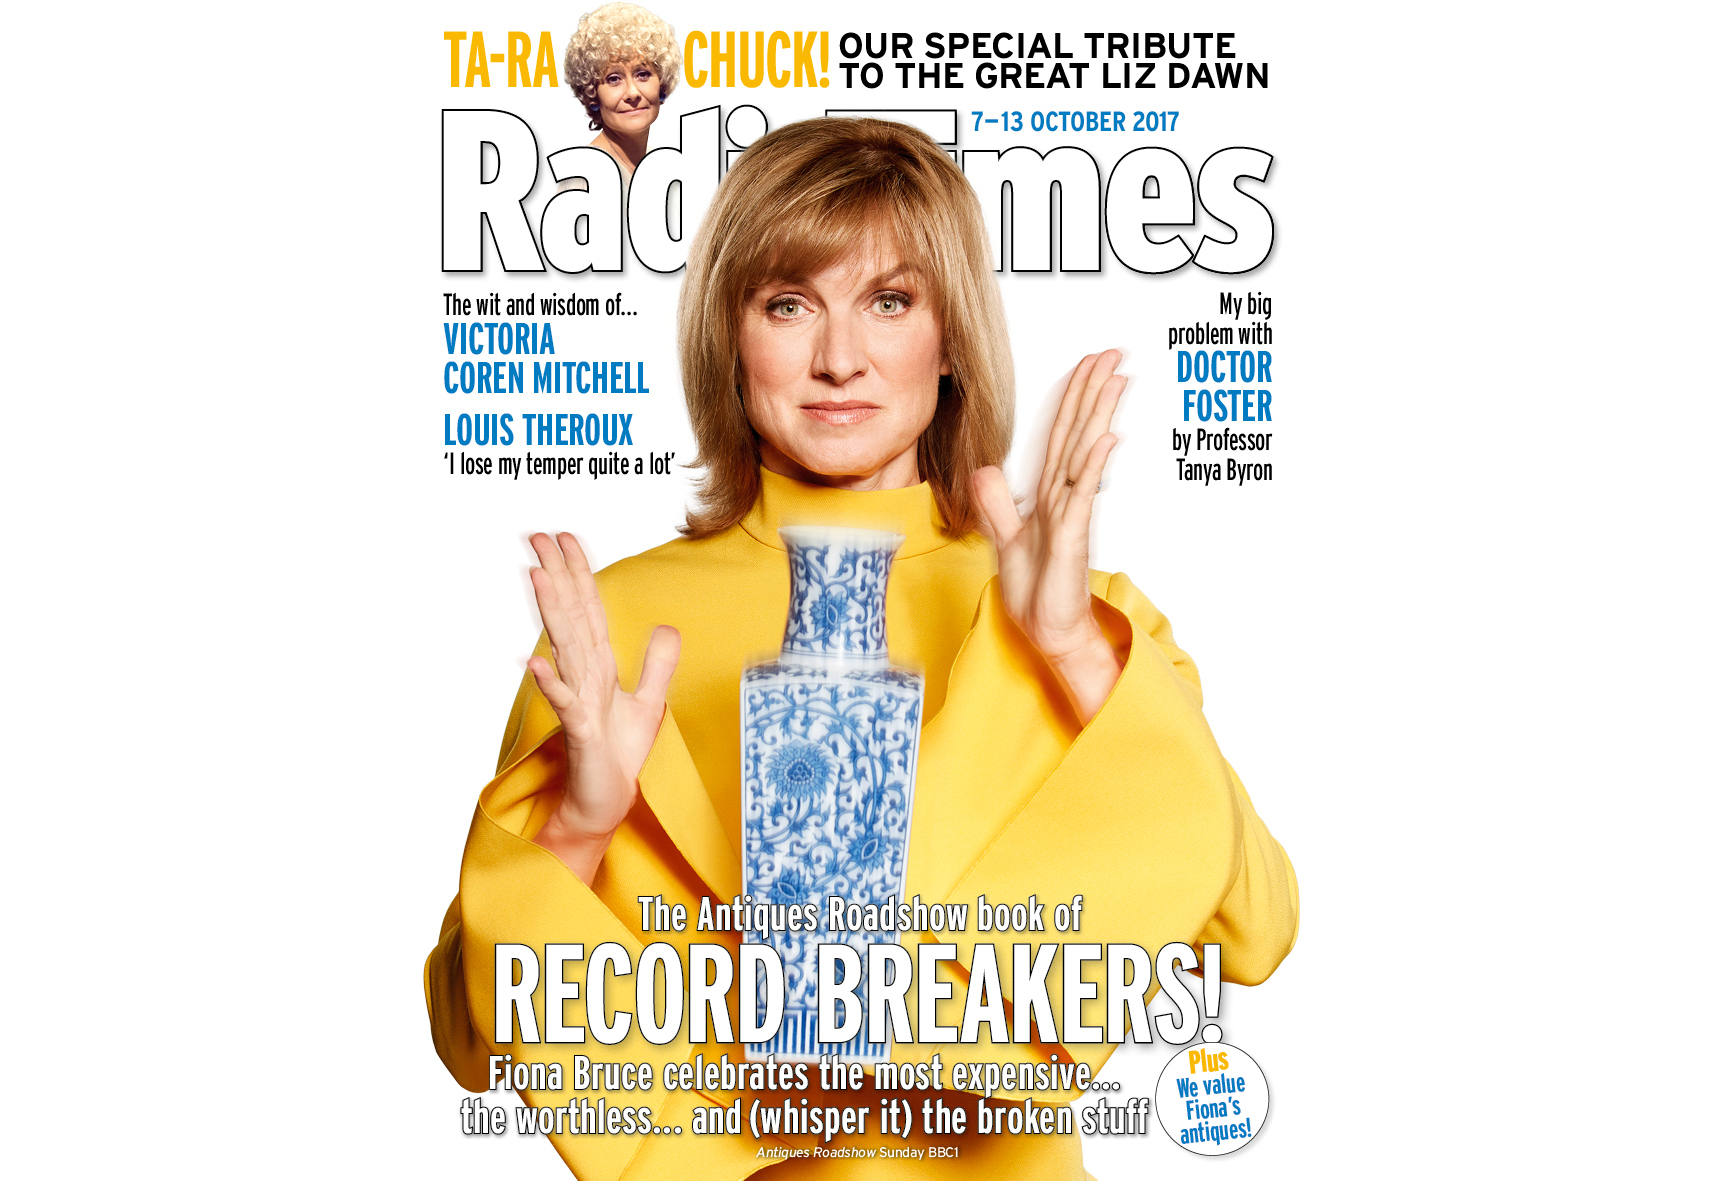 Antiques Roadshow presenter Fiona Bruce on the cover of this week's Radio Times